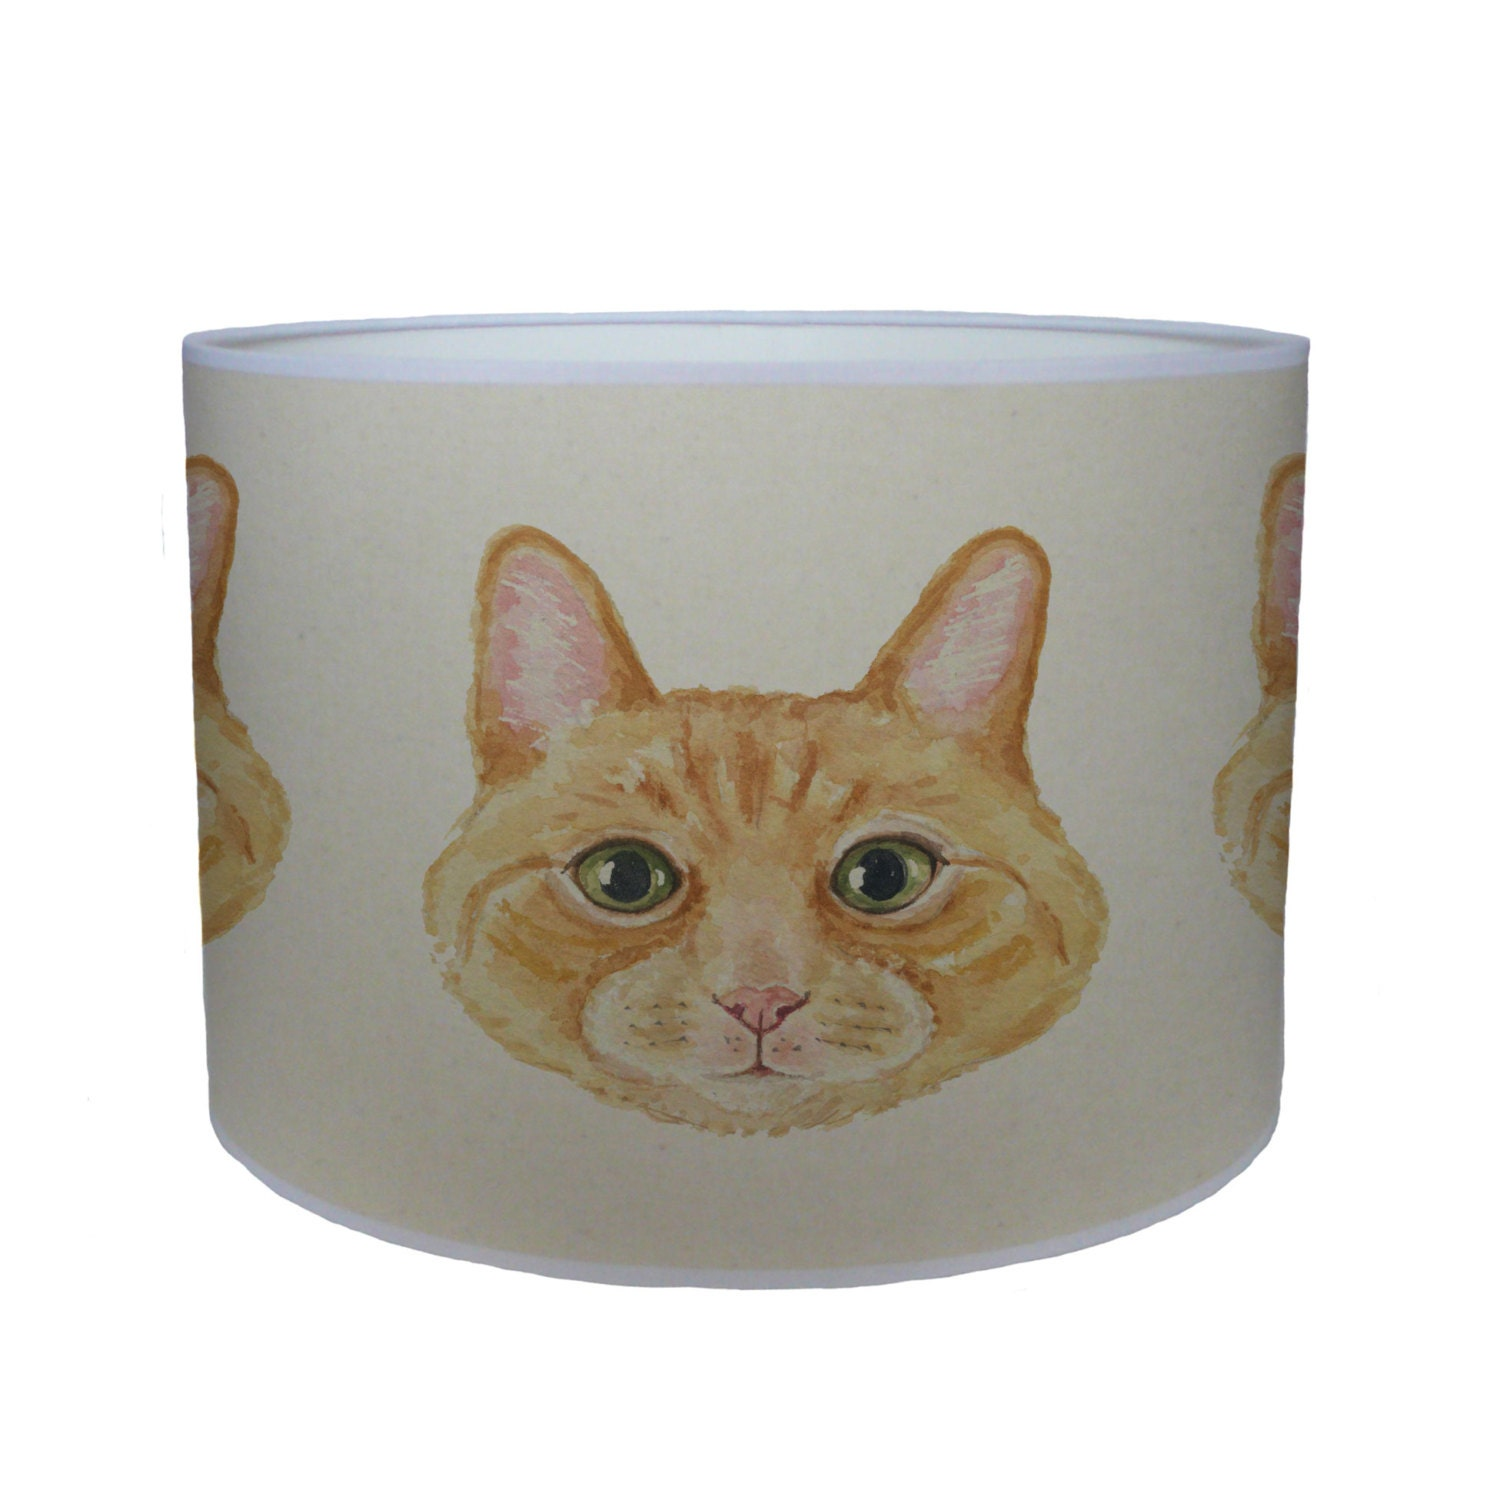 ginger cat shade lamp shade ceiling shade drum lampshade lighting handmade home